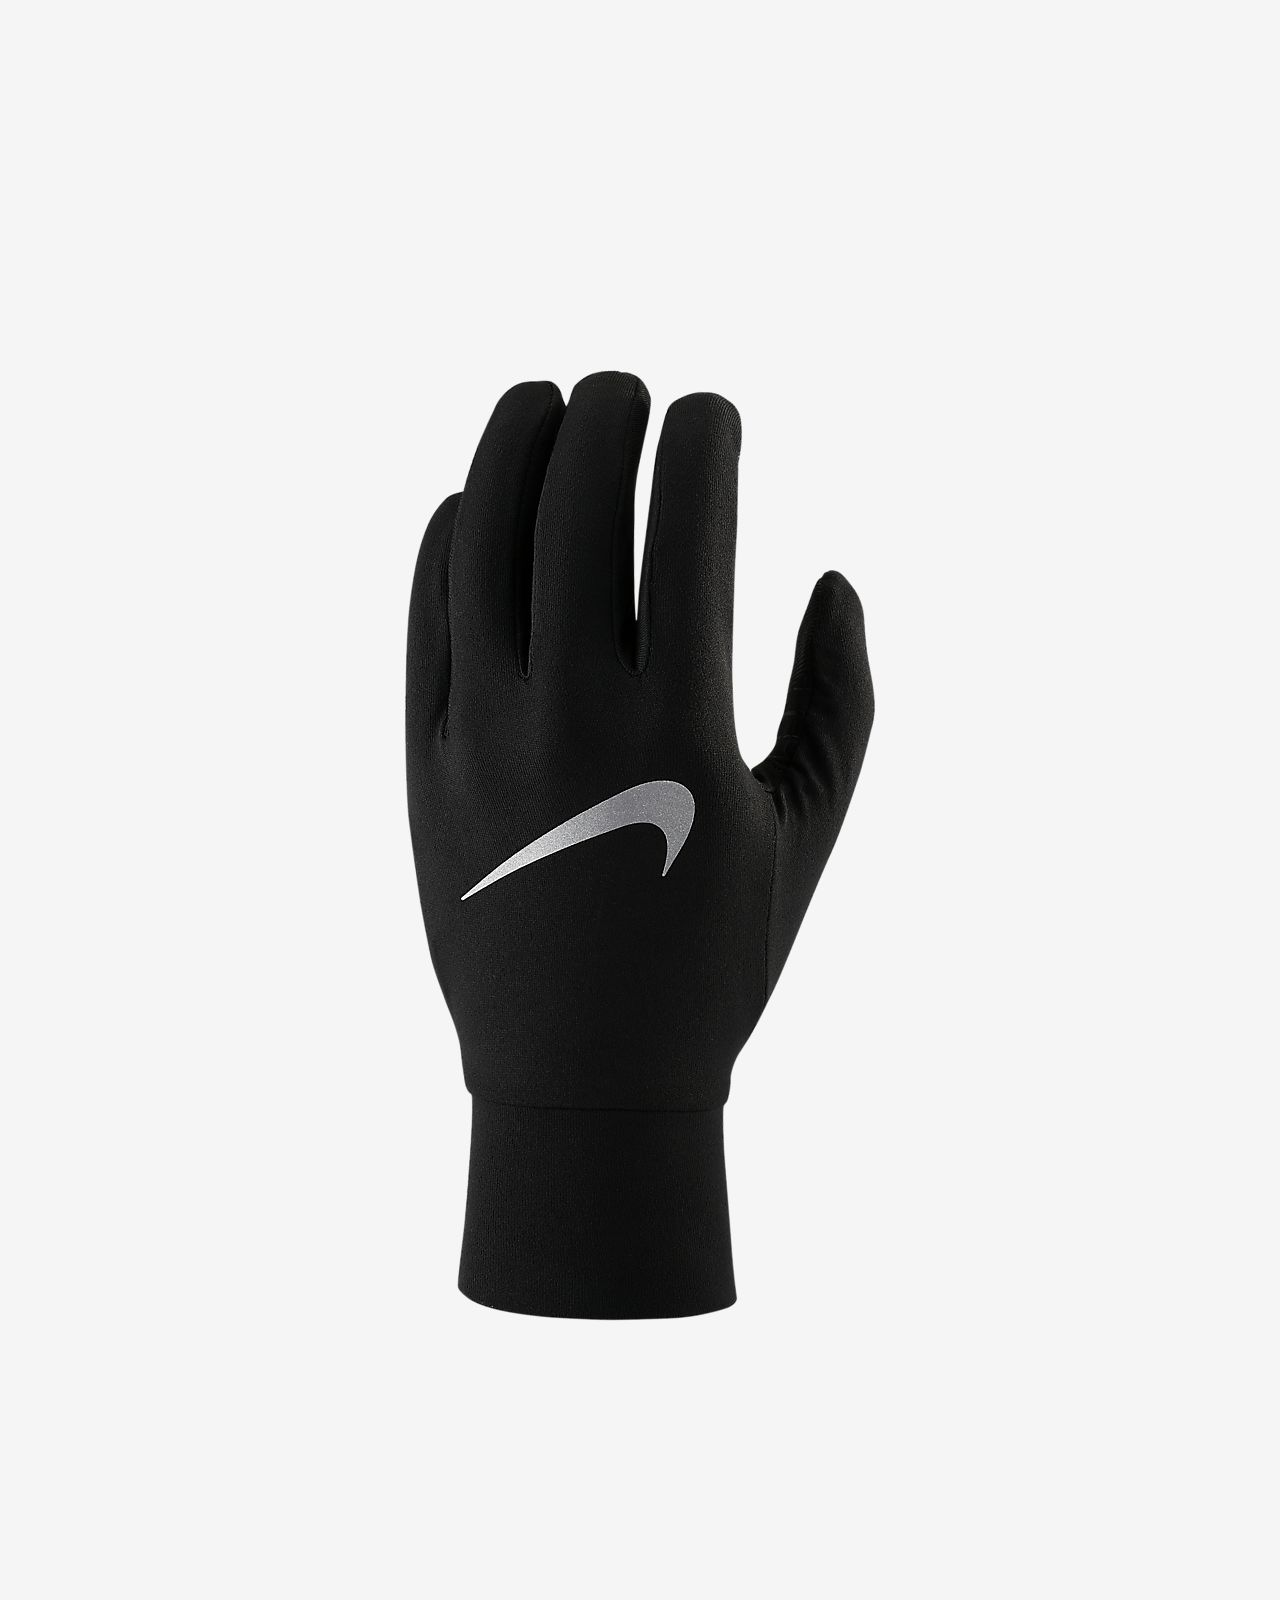 Nike Dri-FIT Men's Running Gloves